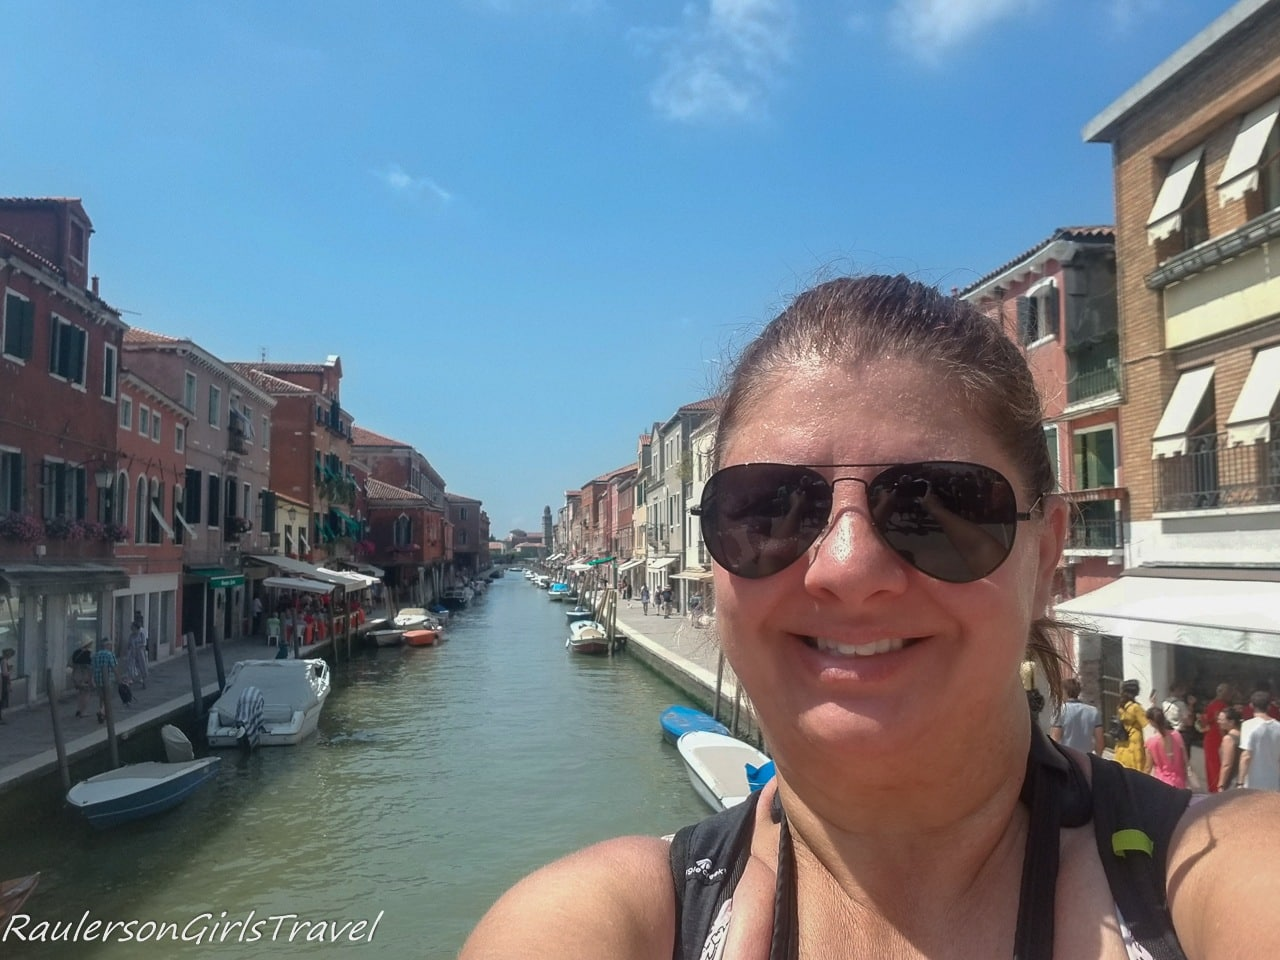 Heather in Murano